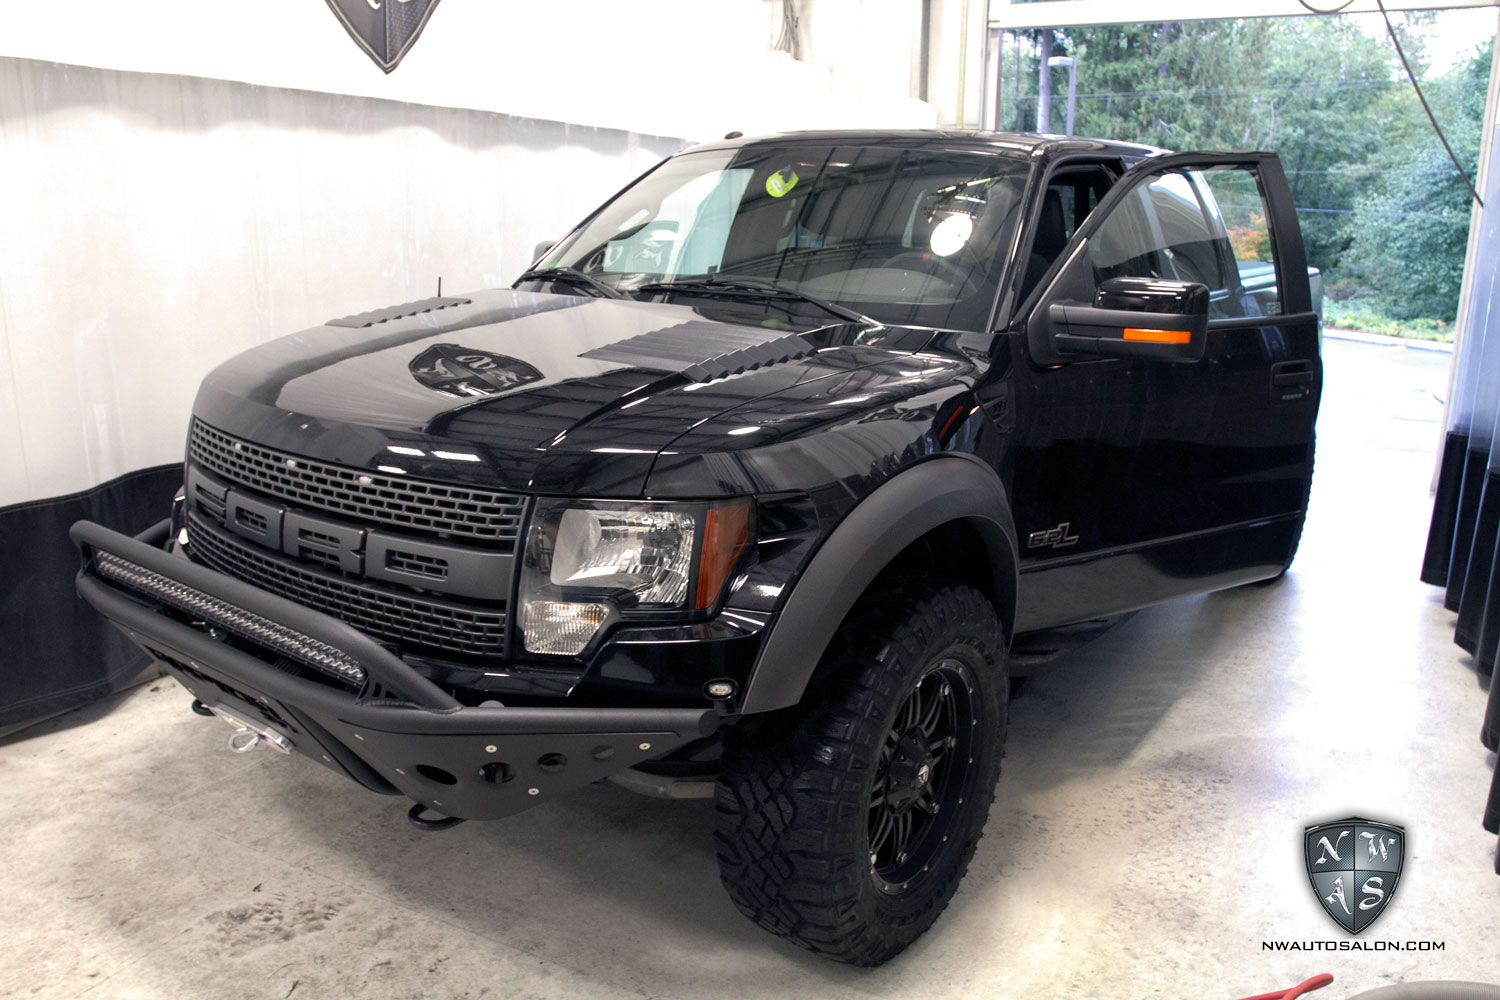 Lynnwood Auto Detailing NorthWest Auto Salon Ford SVT Raptor Super Crew Matte Black Satin Wrap Custom Graphics Ken Block